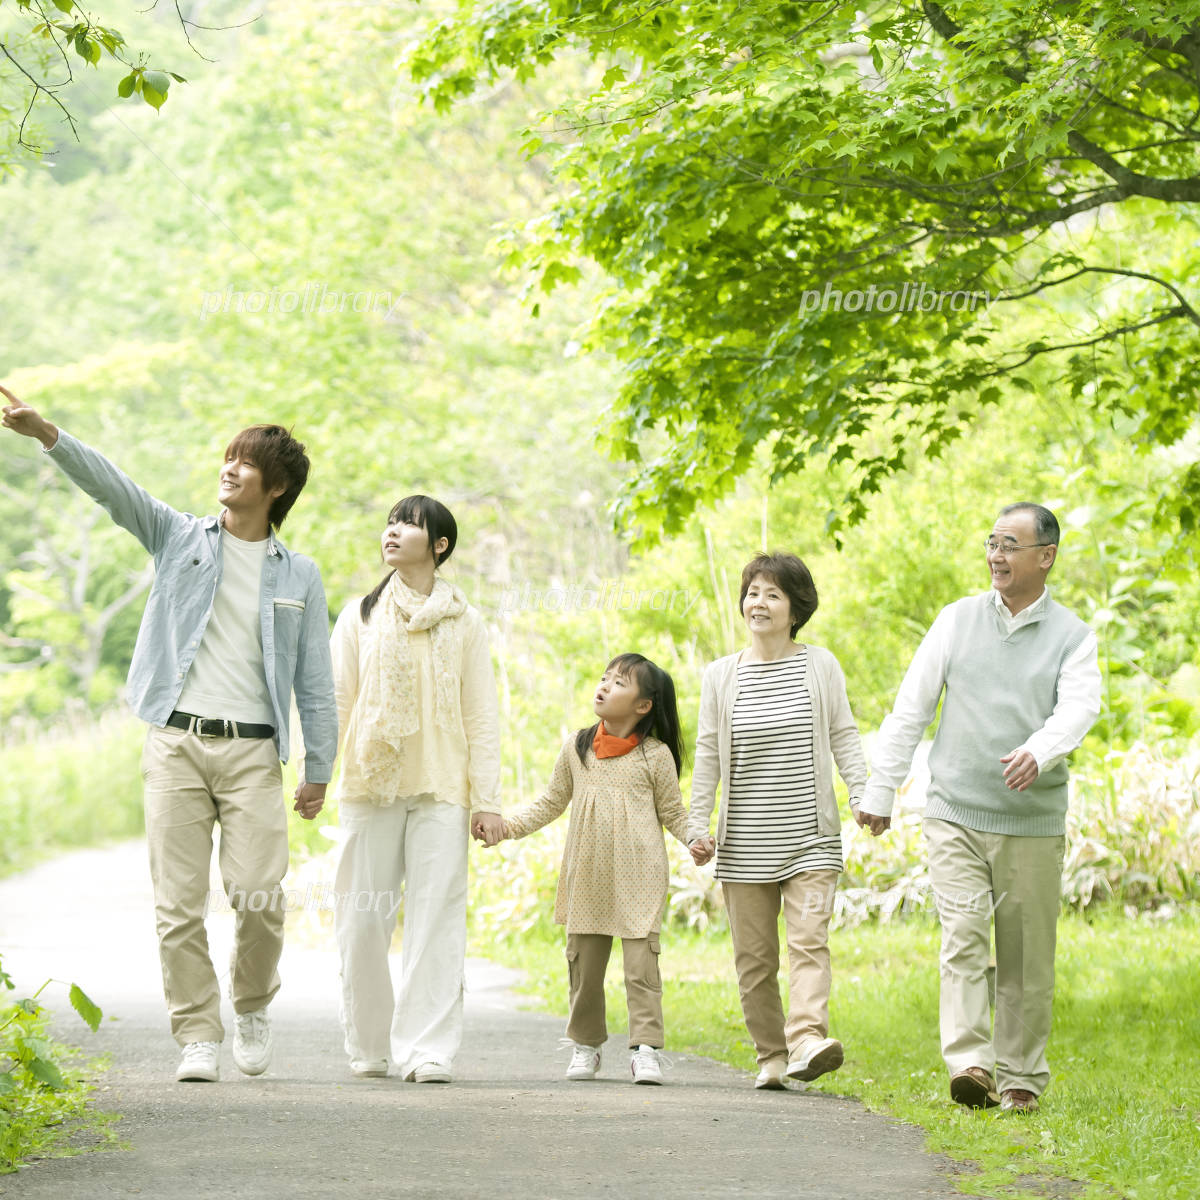 Holding Hands in fresh green 3 generation family Photo